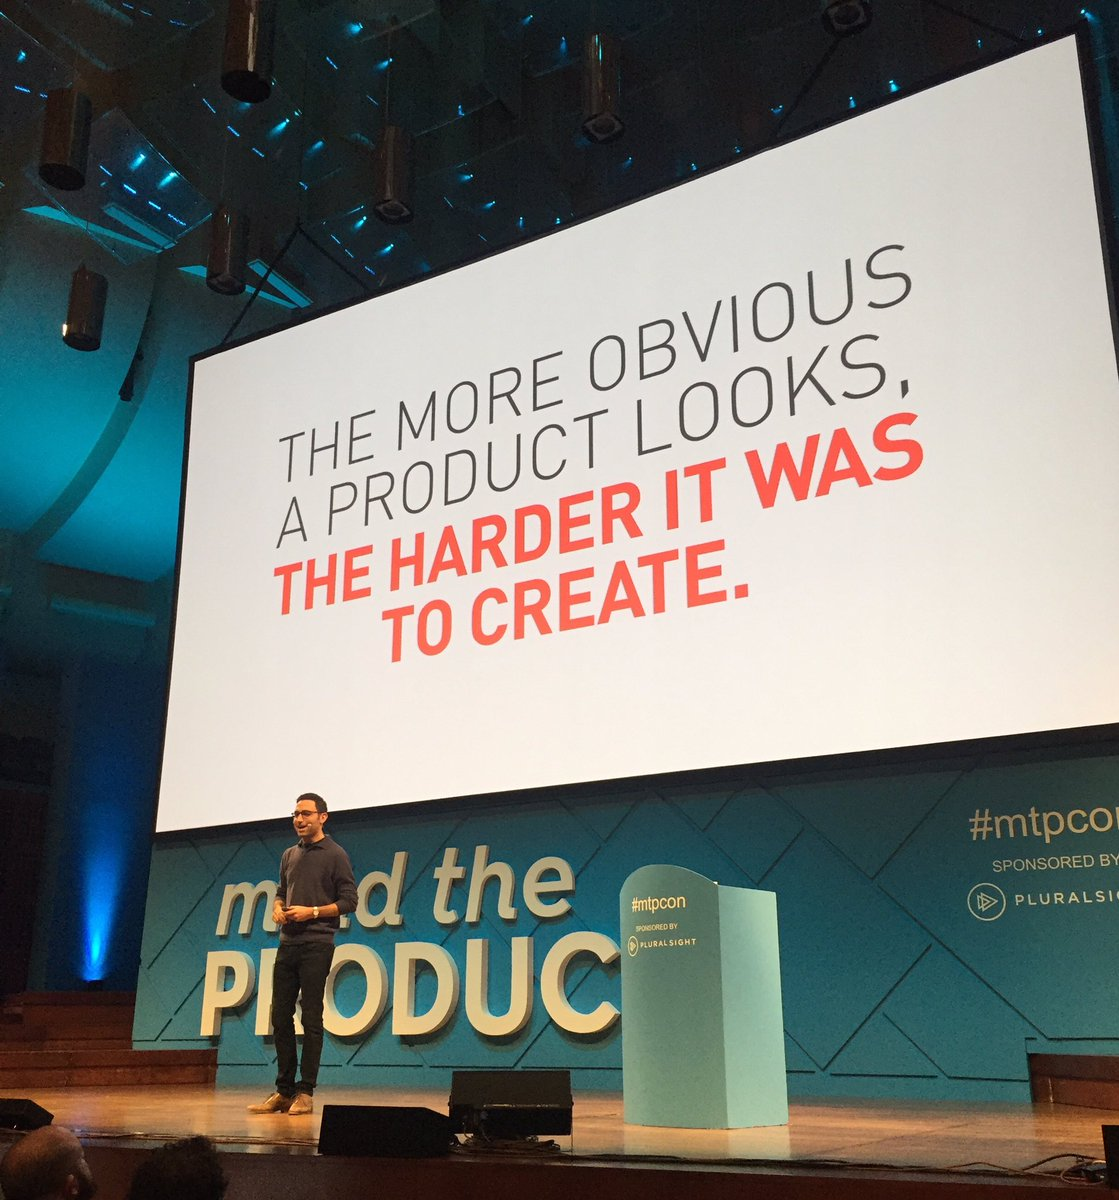 """The more obvious a product looks, the harder it was to create."" @scottbelsky at #mtpcon https://t.co/jD1MSudtuP"